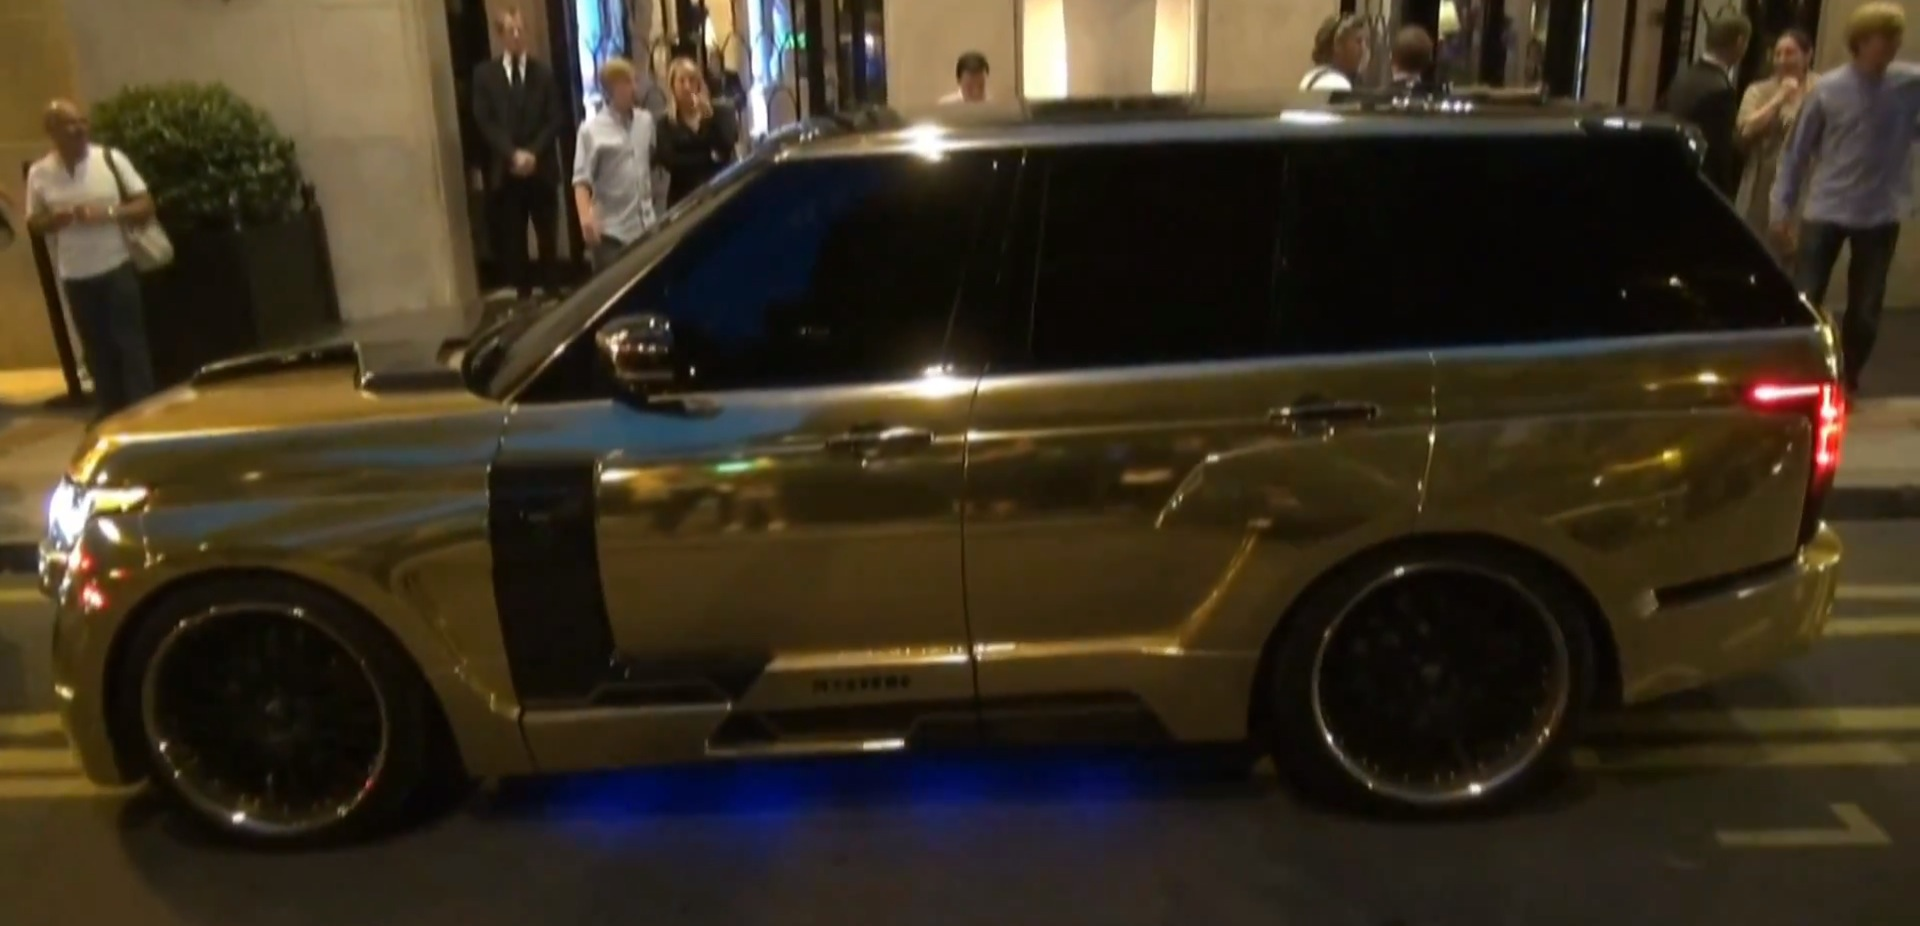 Gold Range Rover With Hamann Mystere Kit Spotted